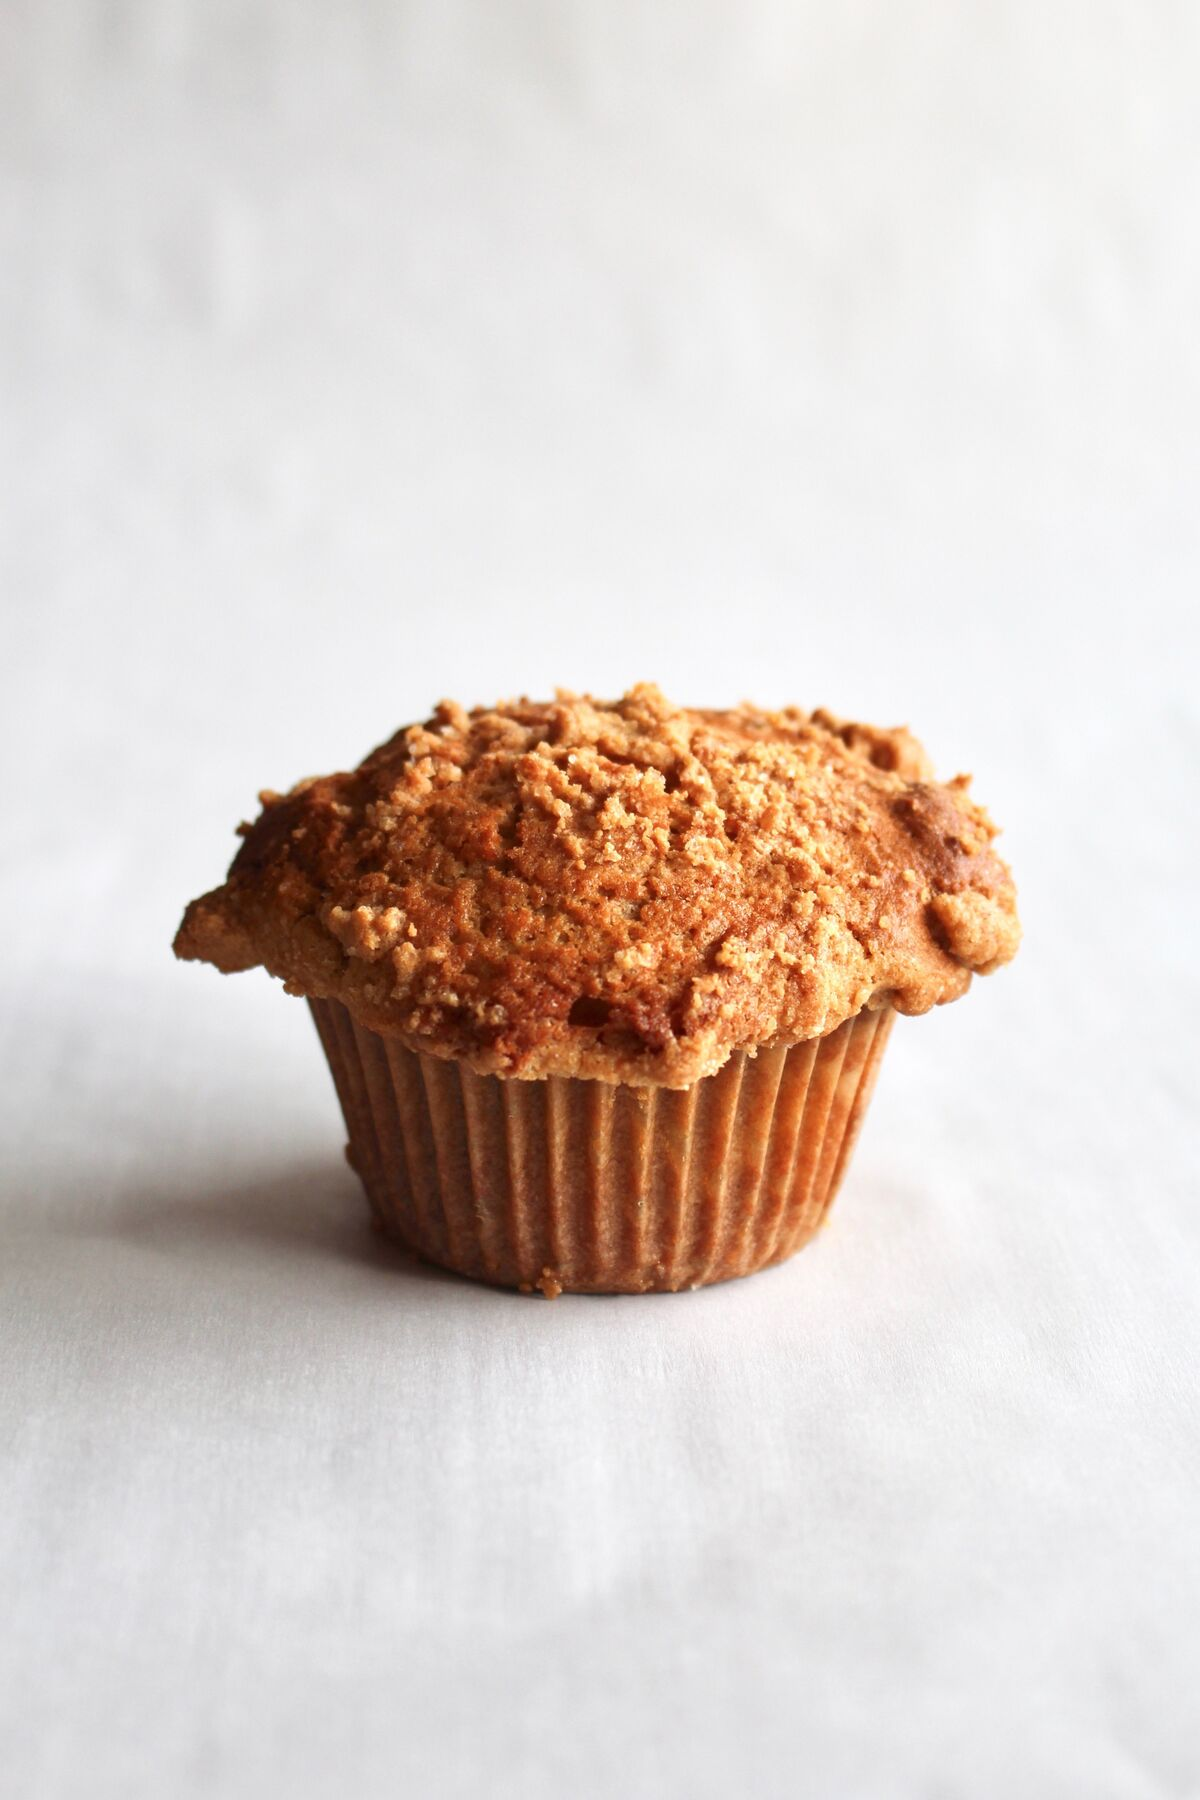 A kinako muffin on a grey background